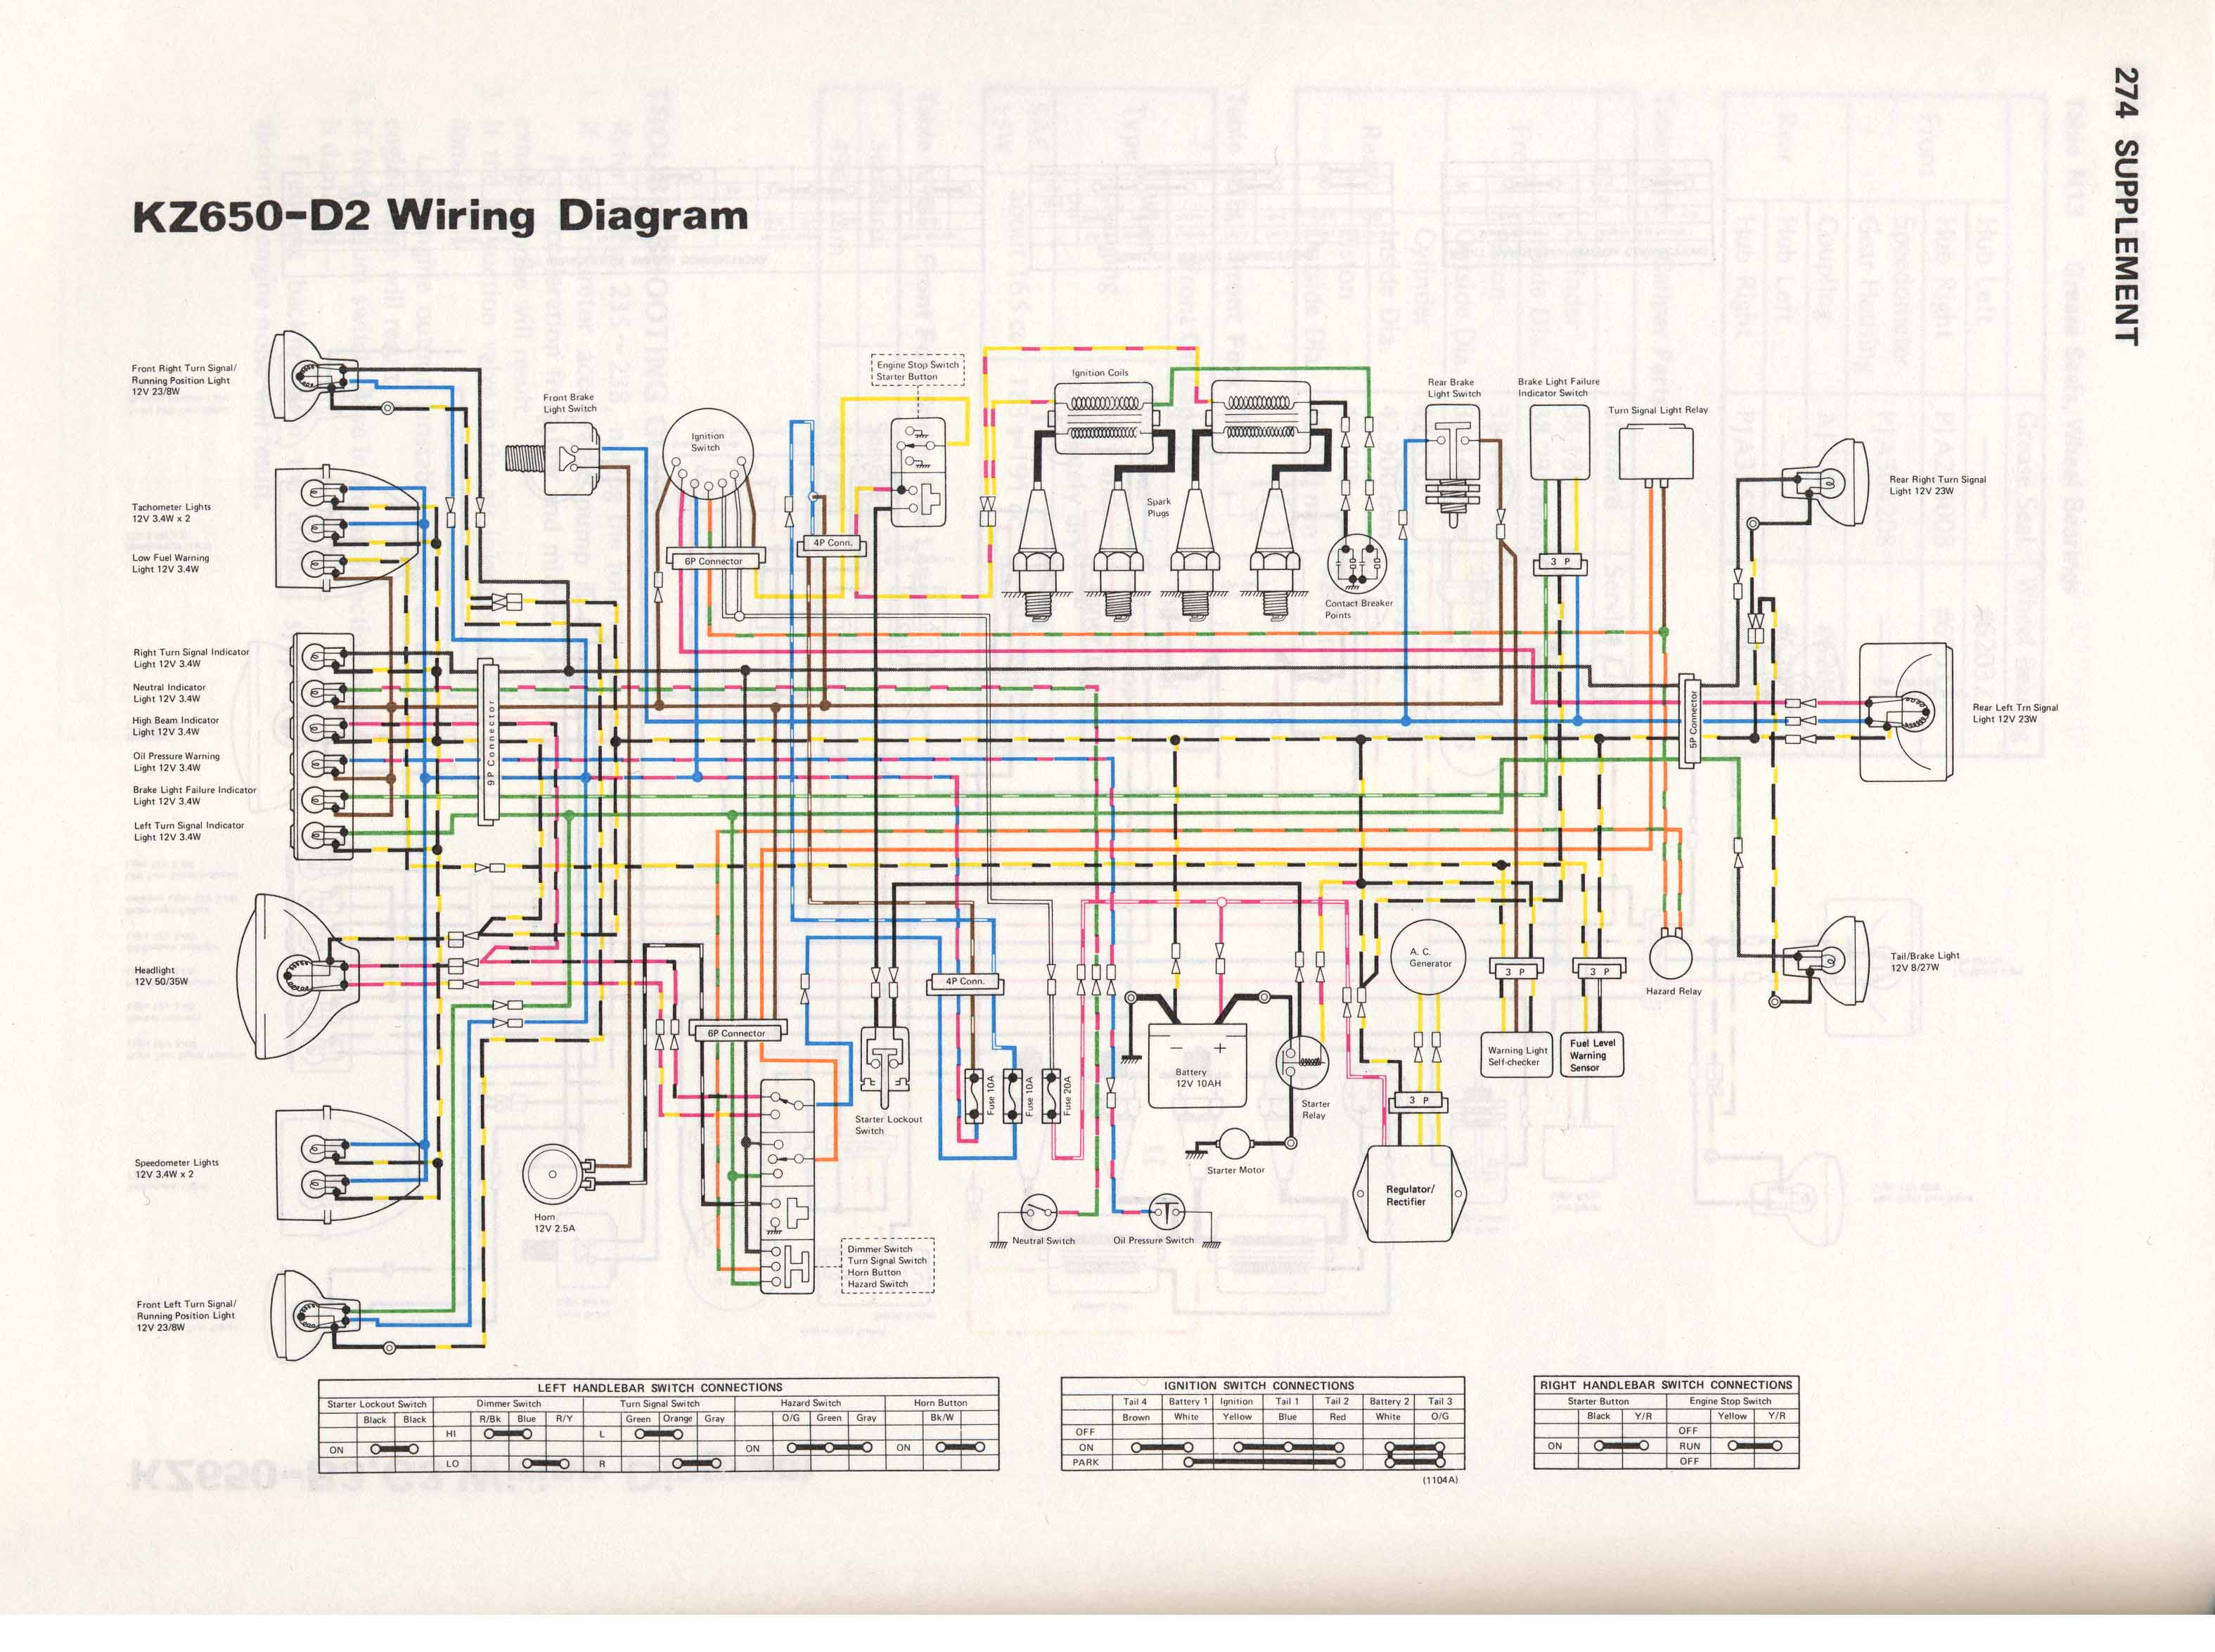 KZ650 D2 husqvarna wiring diagram husqvarna wiring diagram cv15s motor  at crackthecode.co